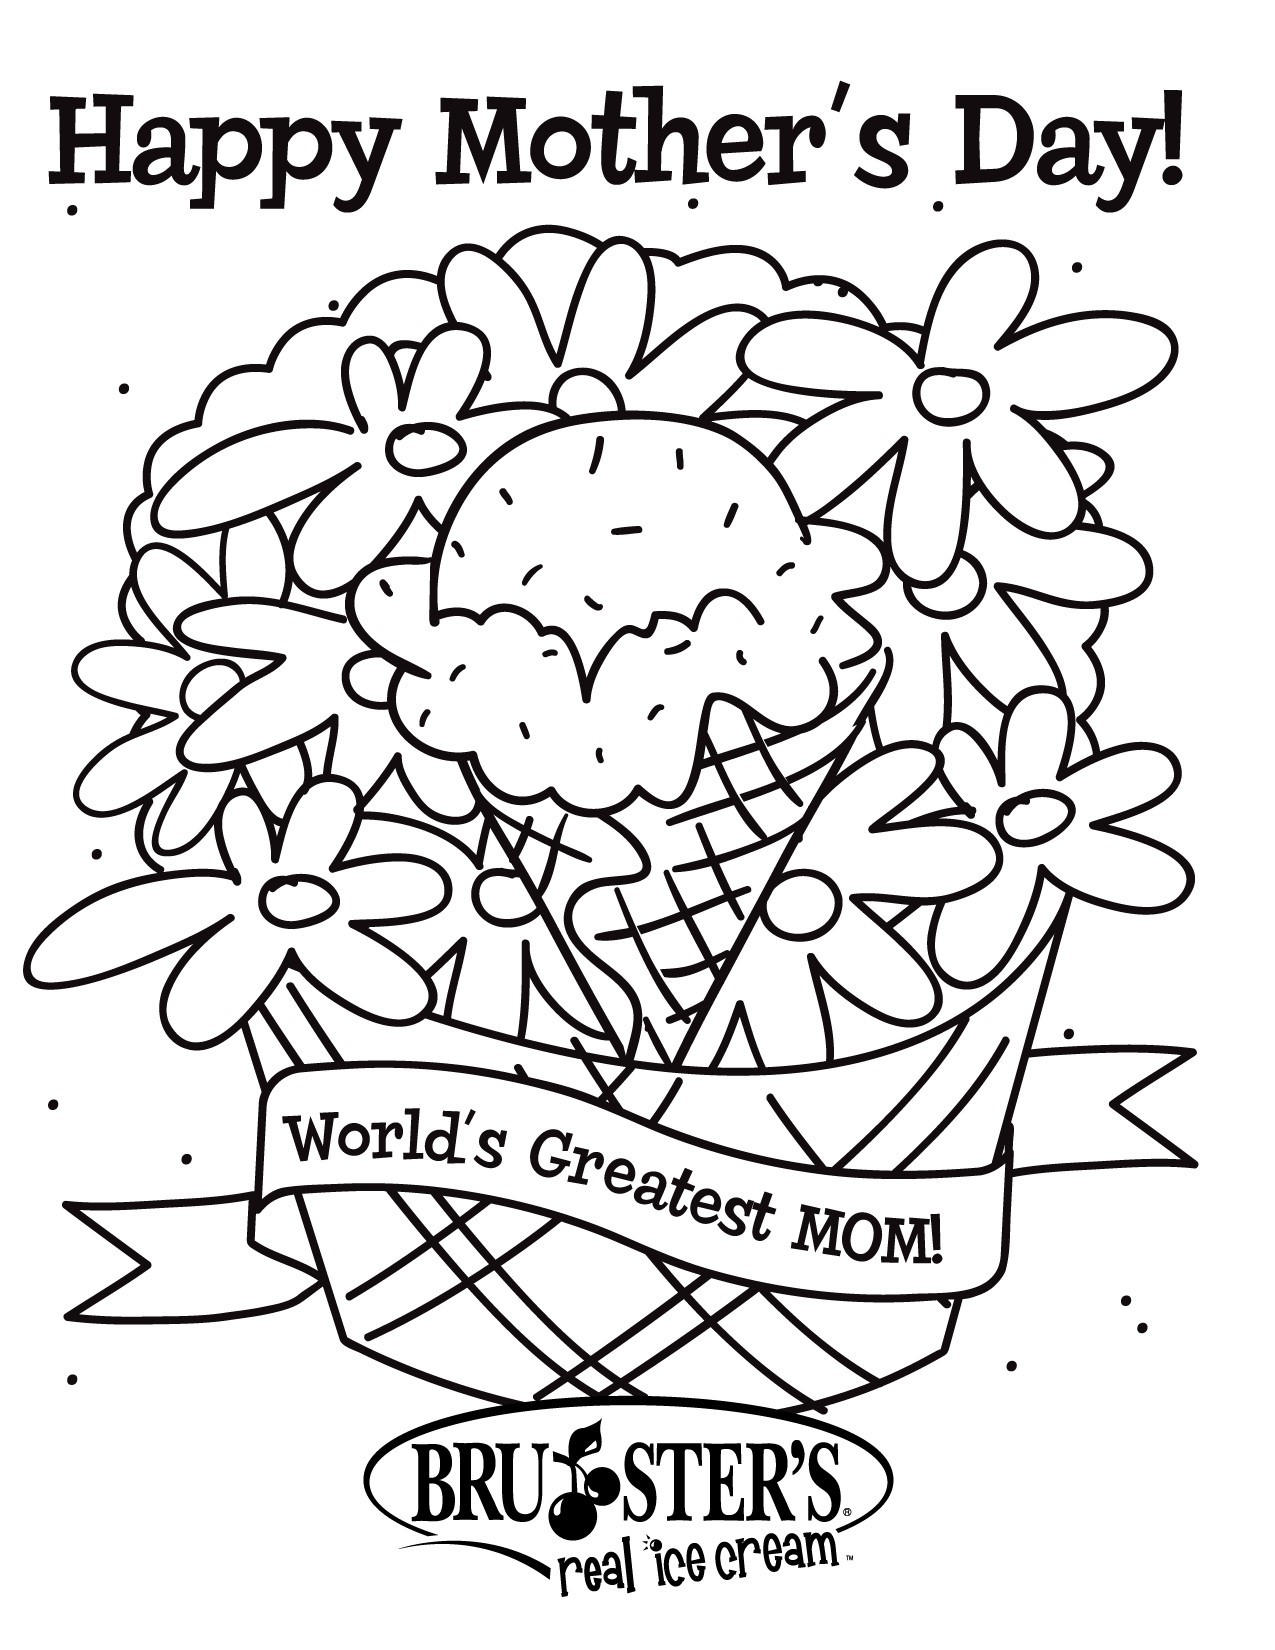 Mothers Day Coloring Pages For Adults At Getcolorings